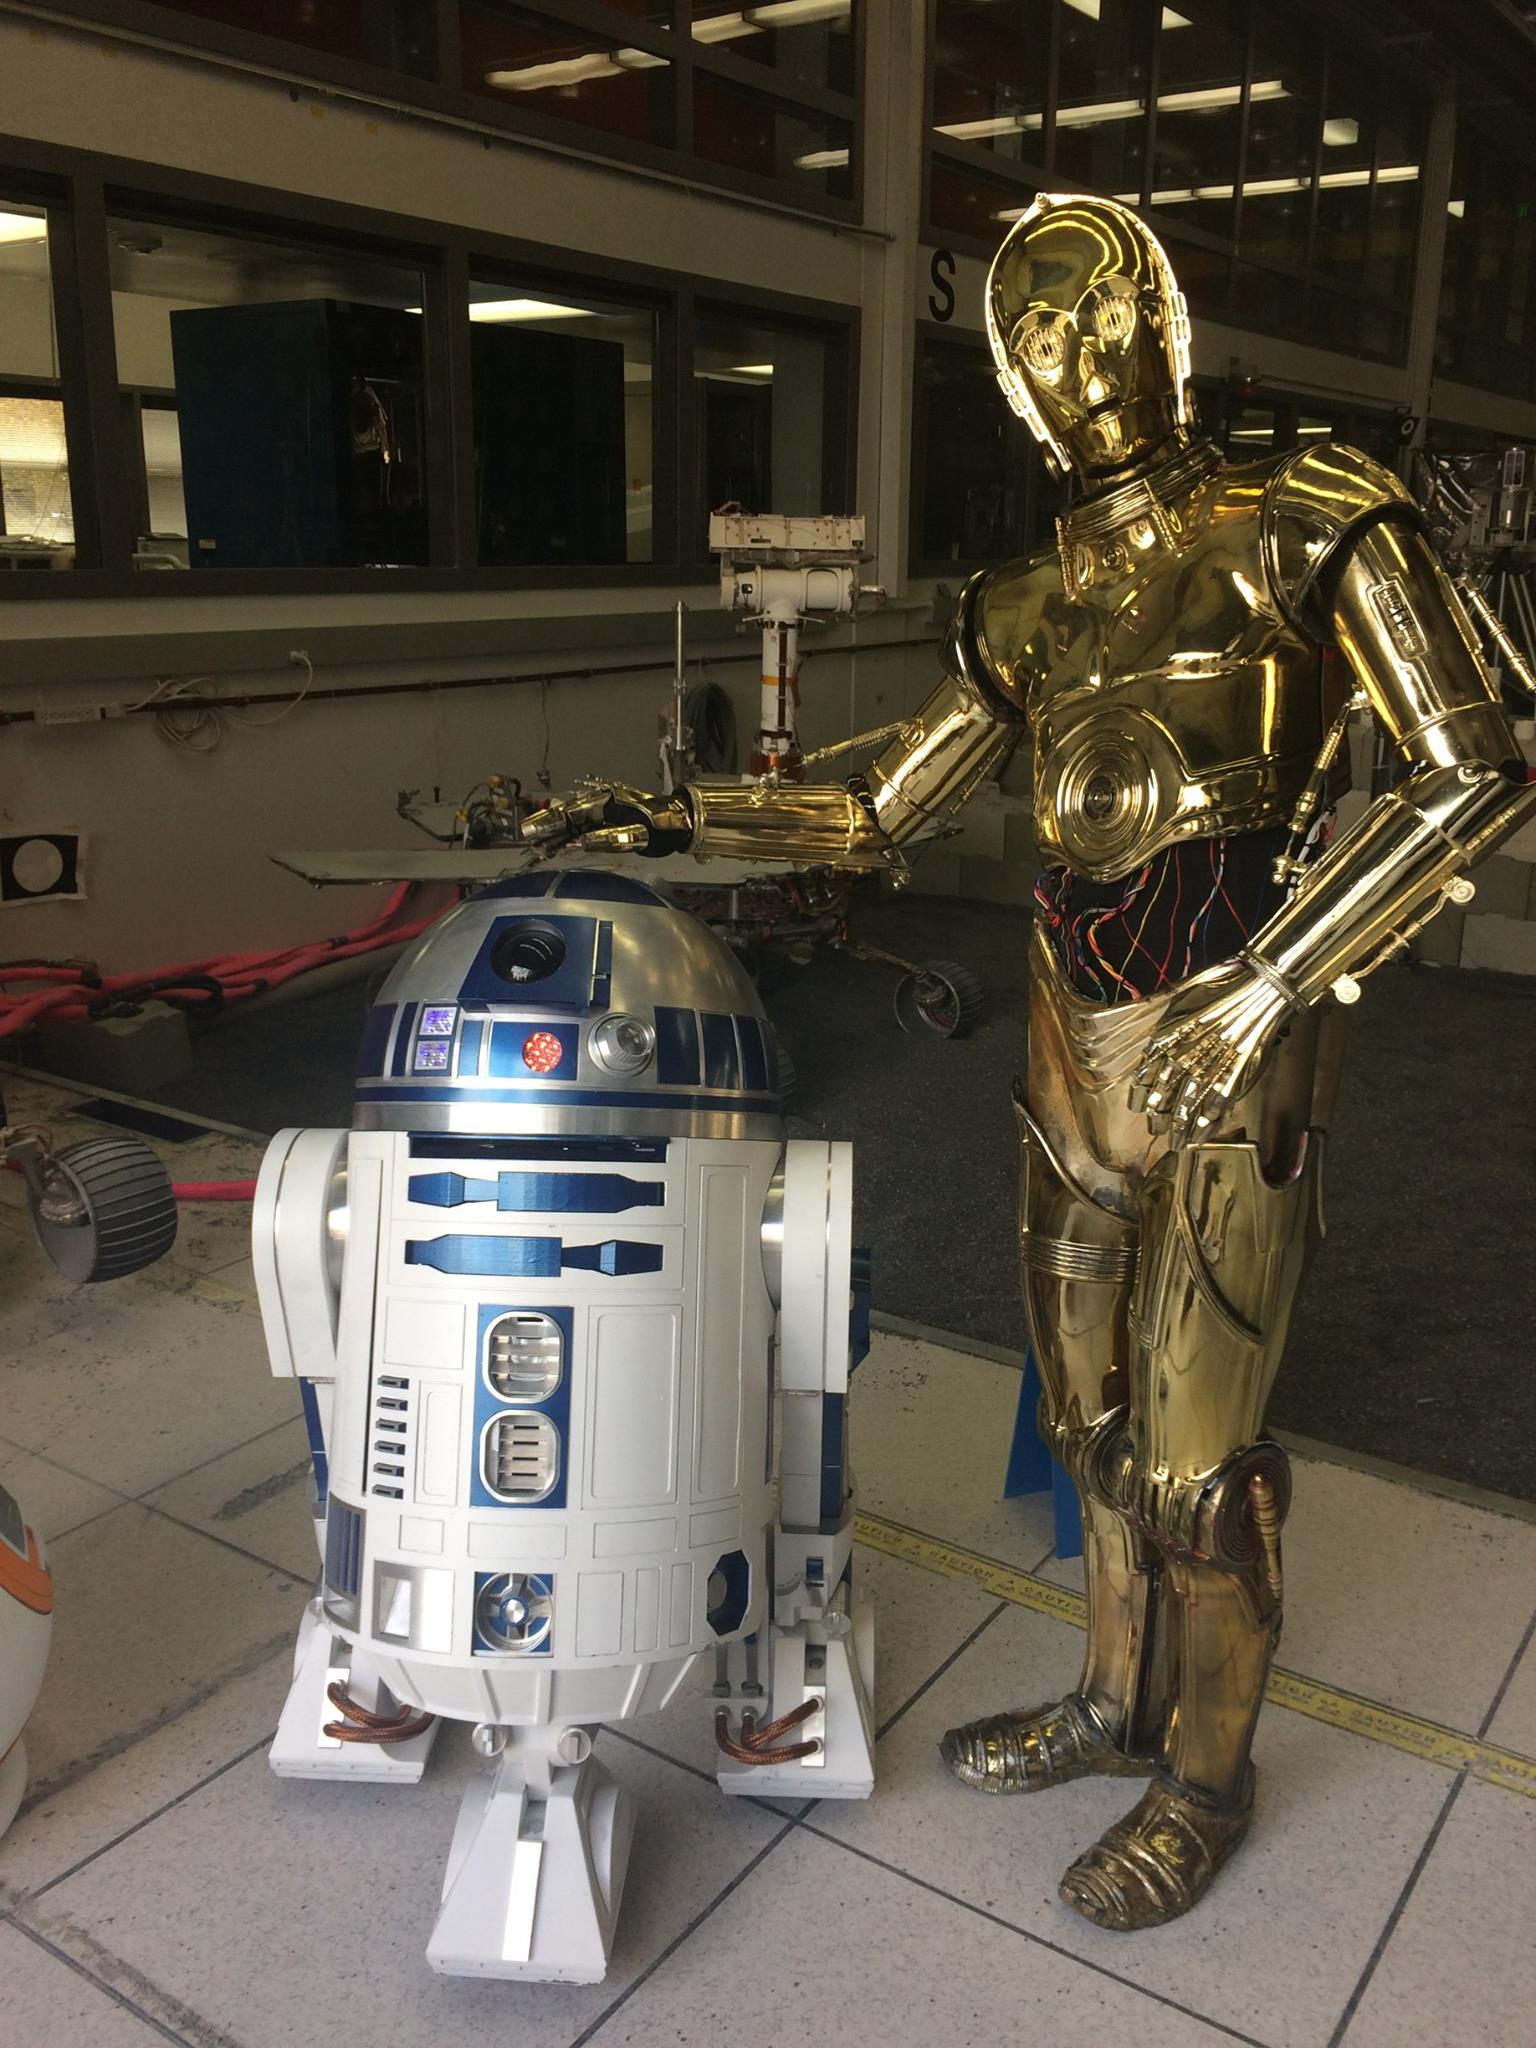 R2 and friends